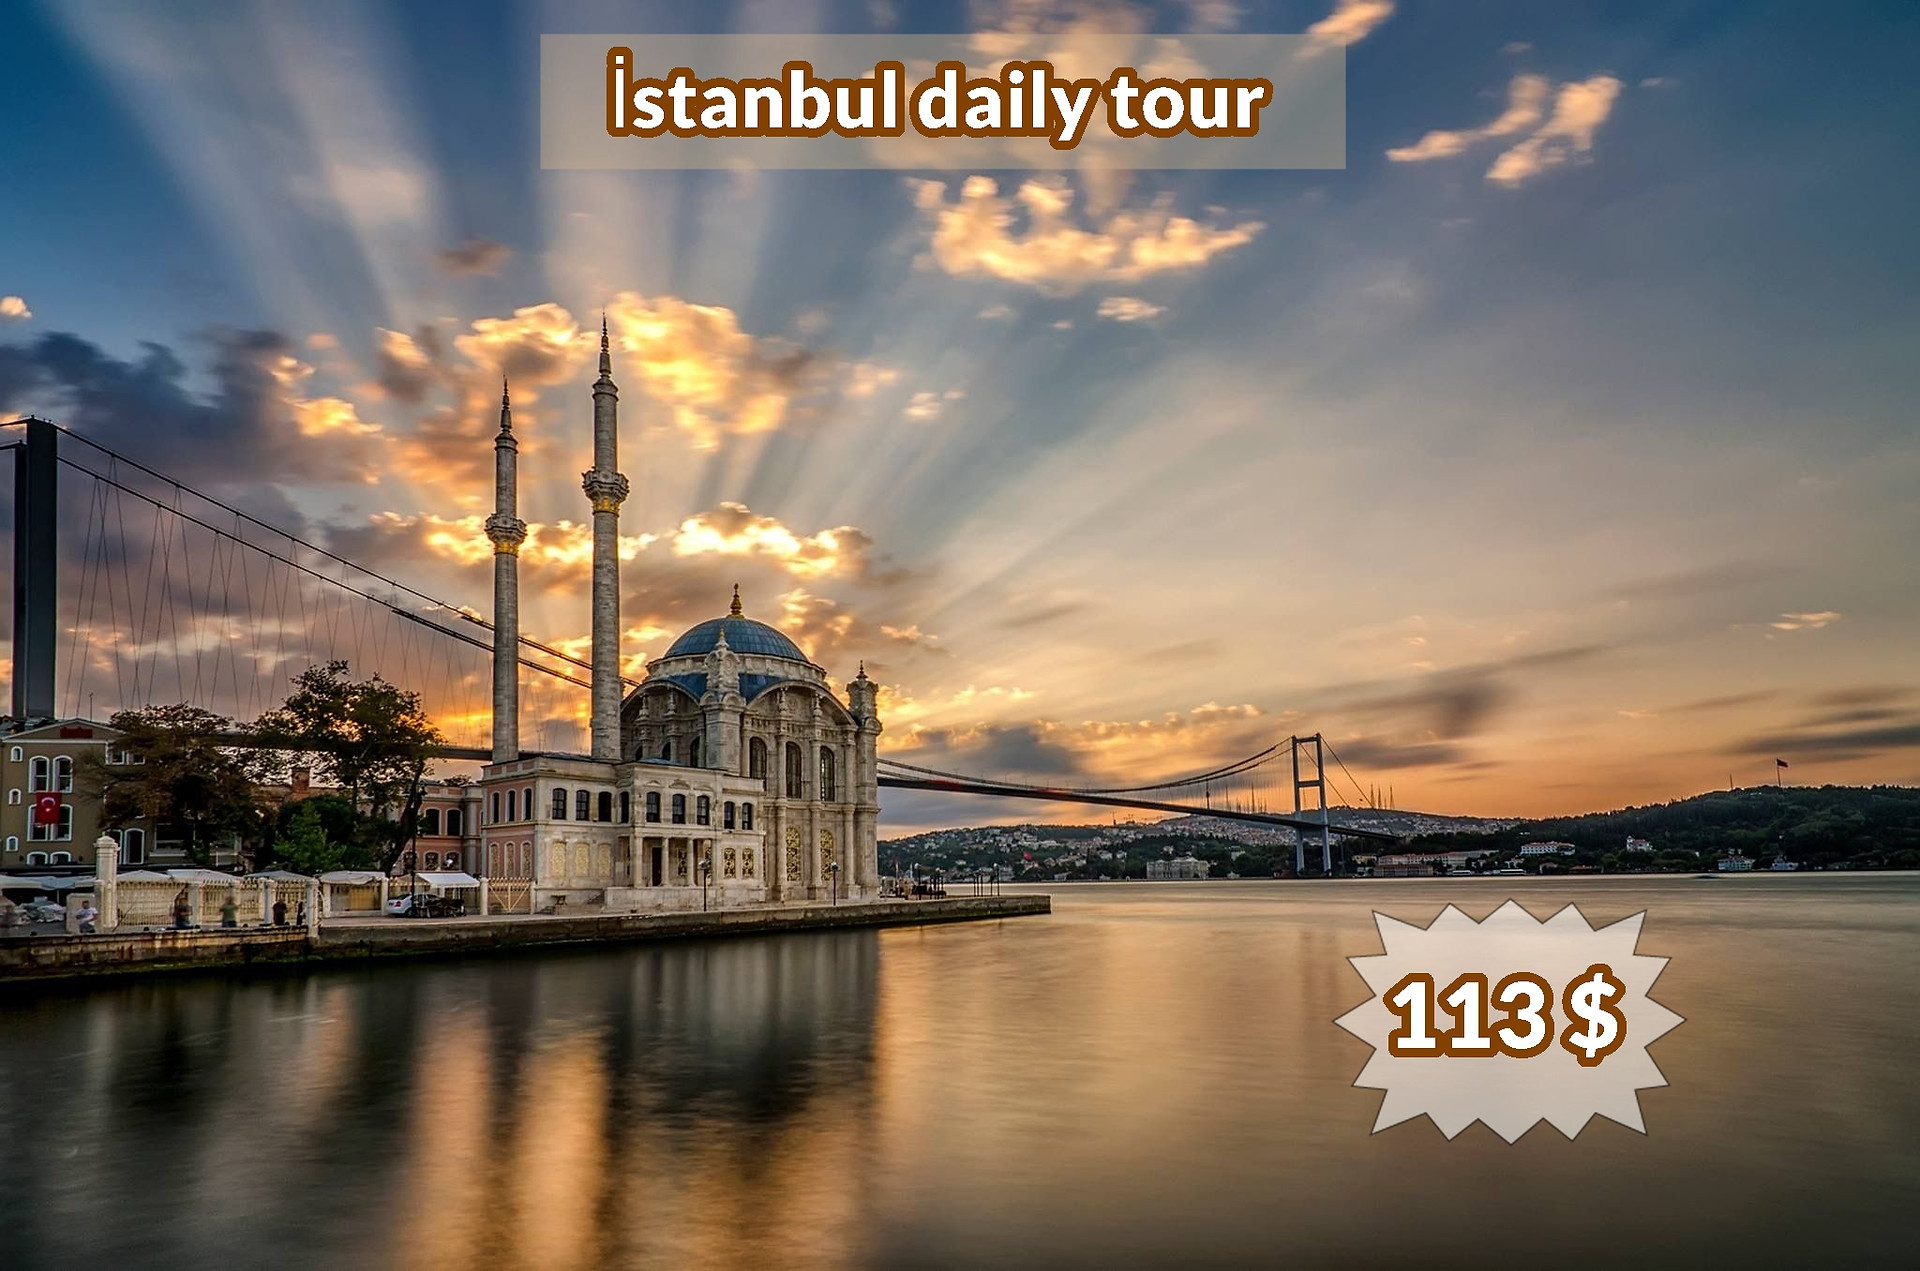 İstanbul Daily Tour